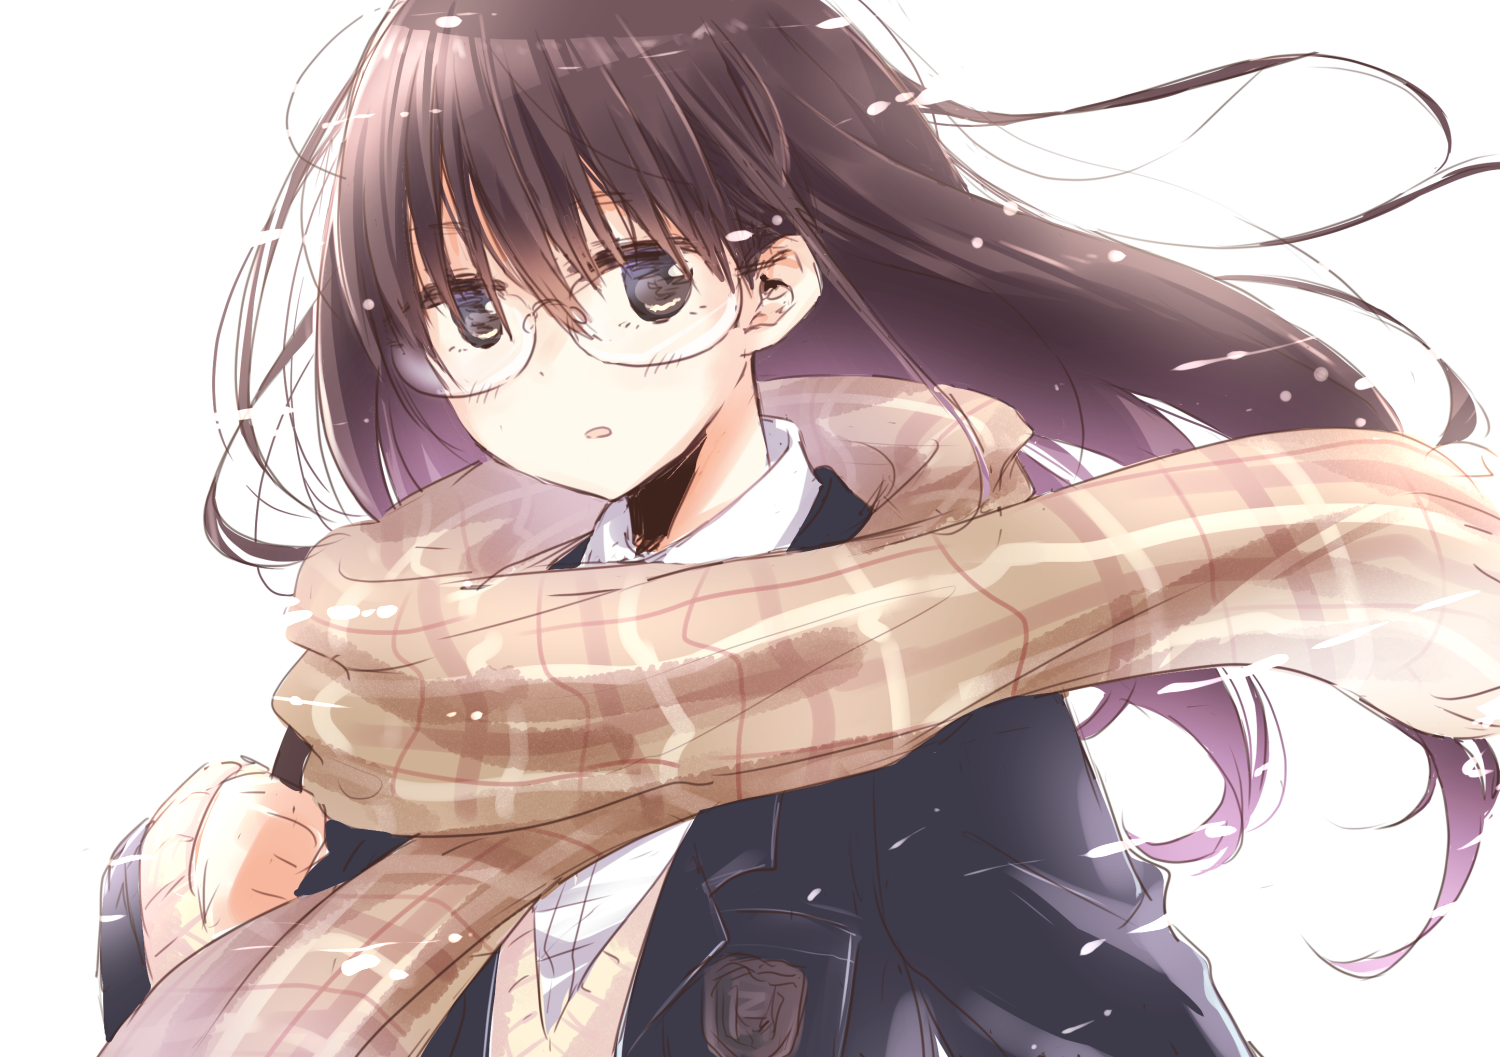 Anime girl with brown hair and blue eyes and glasses 1180887 heartlove info